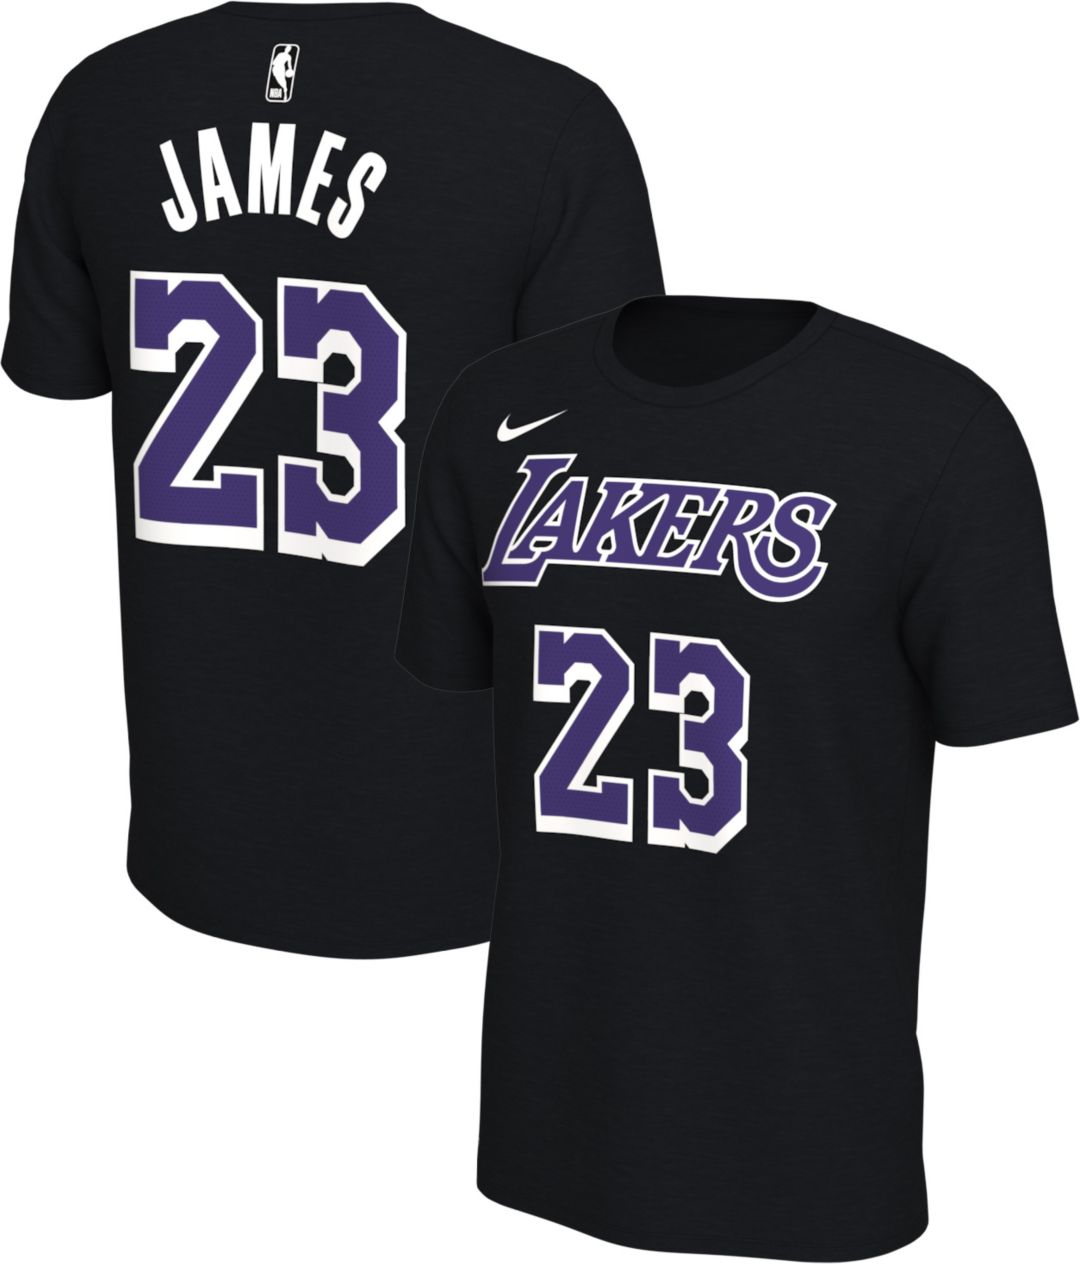 promo code 254d1 7a89c Nike Men's Los Angeles Lakers LeBron James #23 Dri-FIT Black T-Shirt